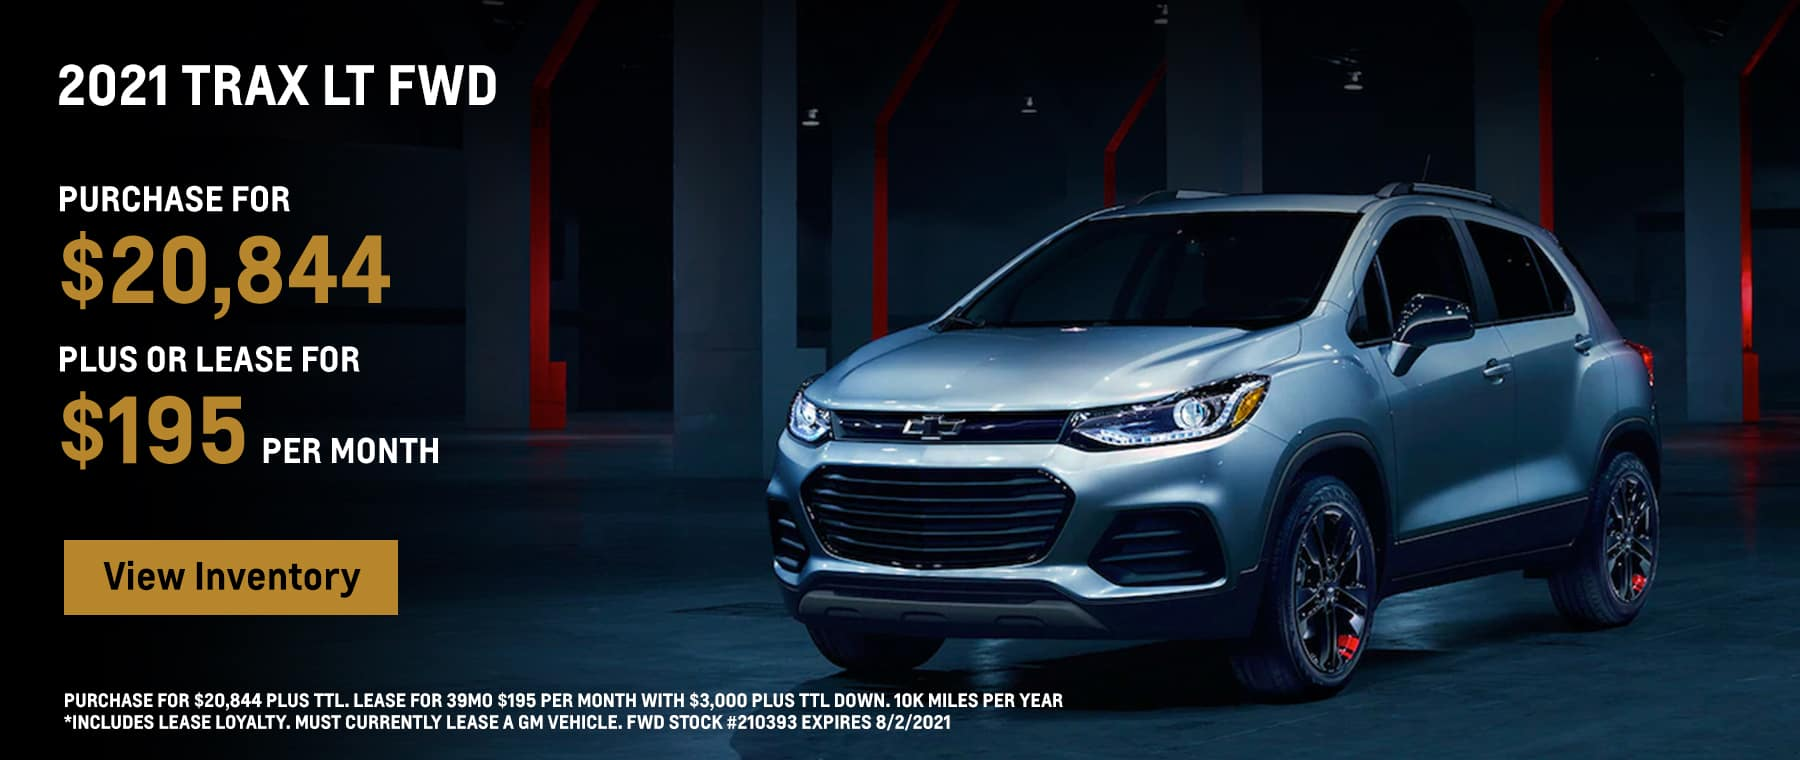 2021 Trax LS Purchase for $20,844 plus or Lease for $195 per month